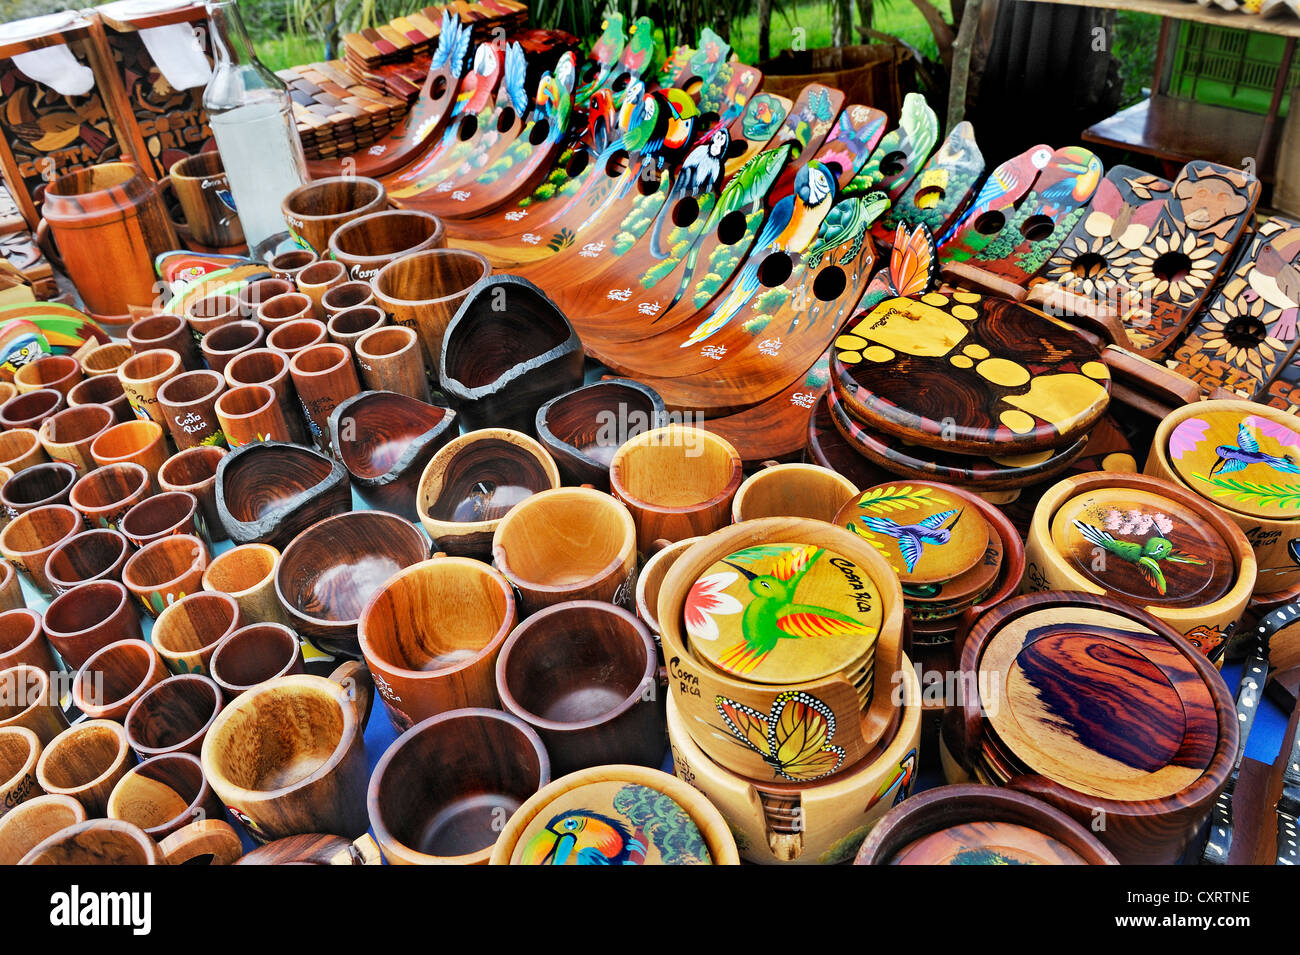 Sale Of Souvenirs Wooden Bowls And Bottle Holders Lake